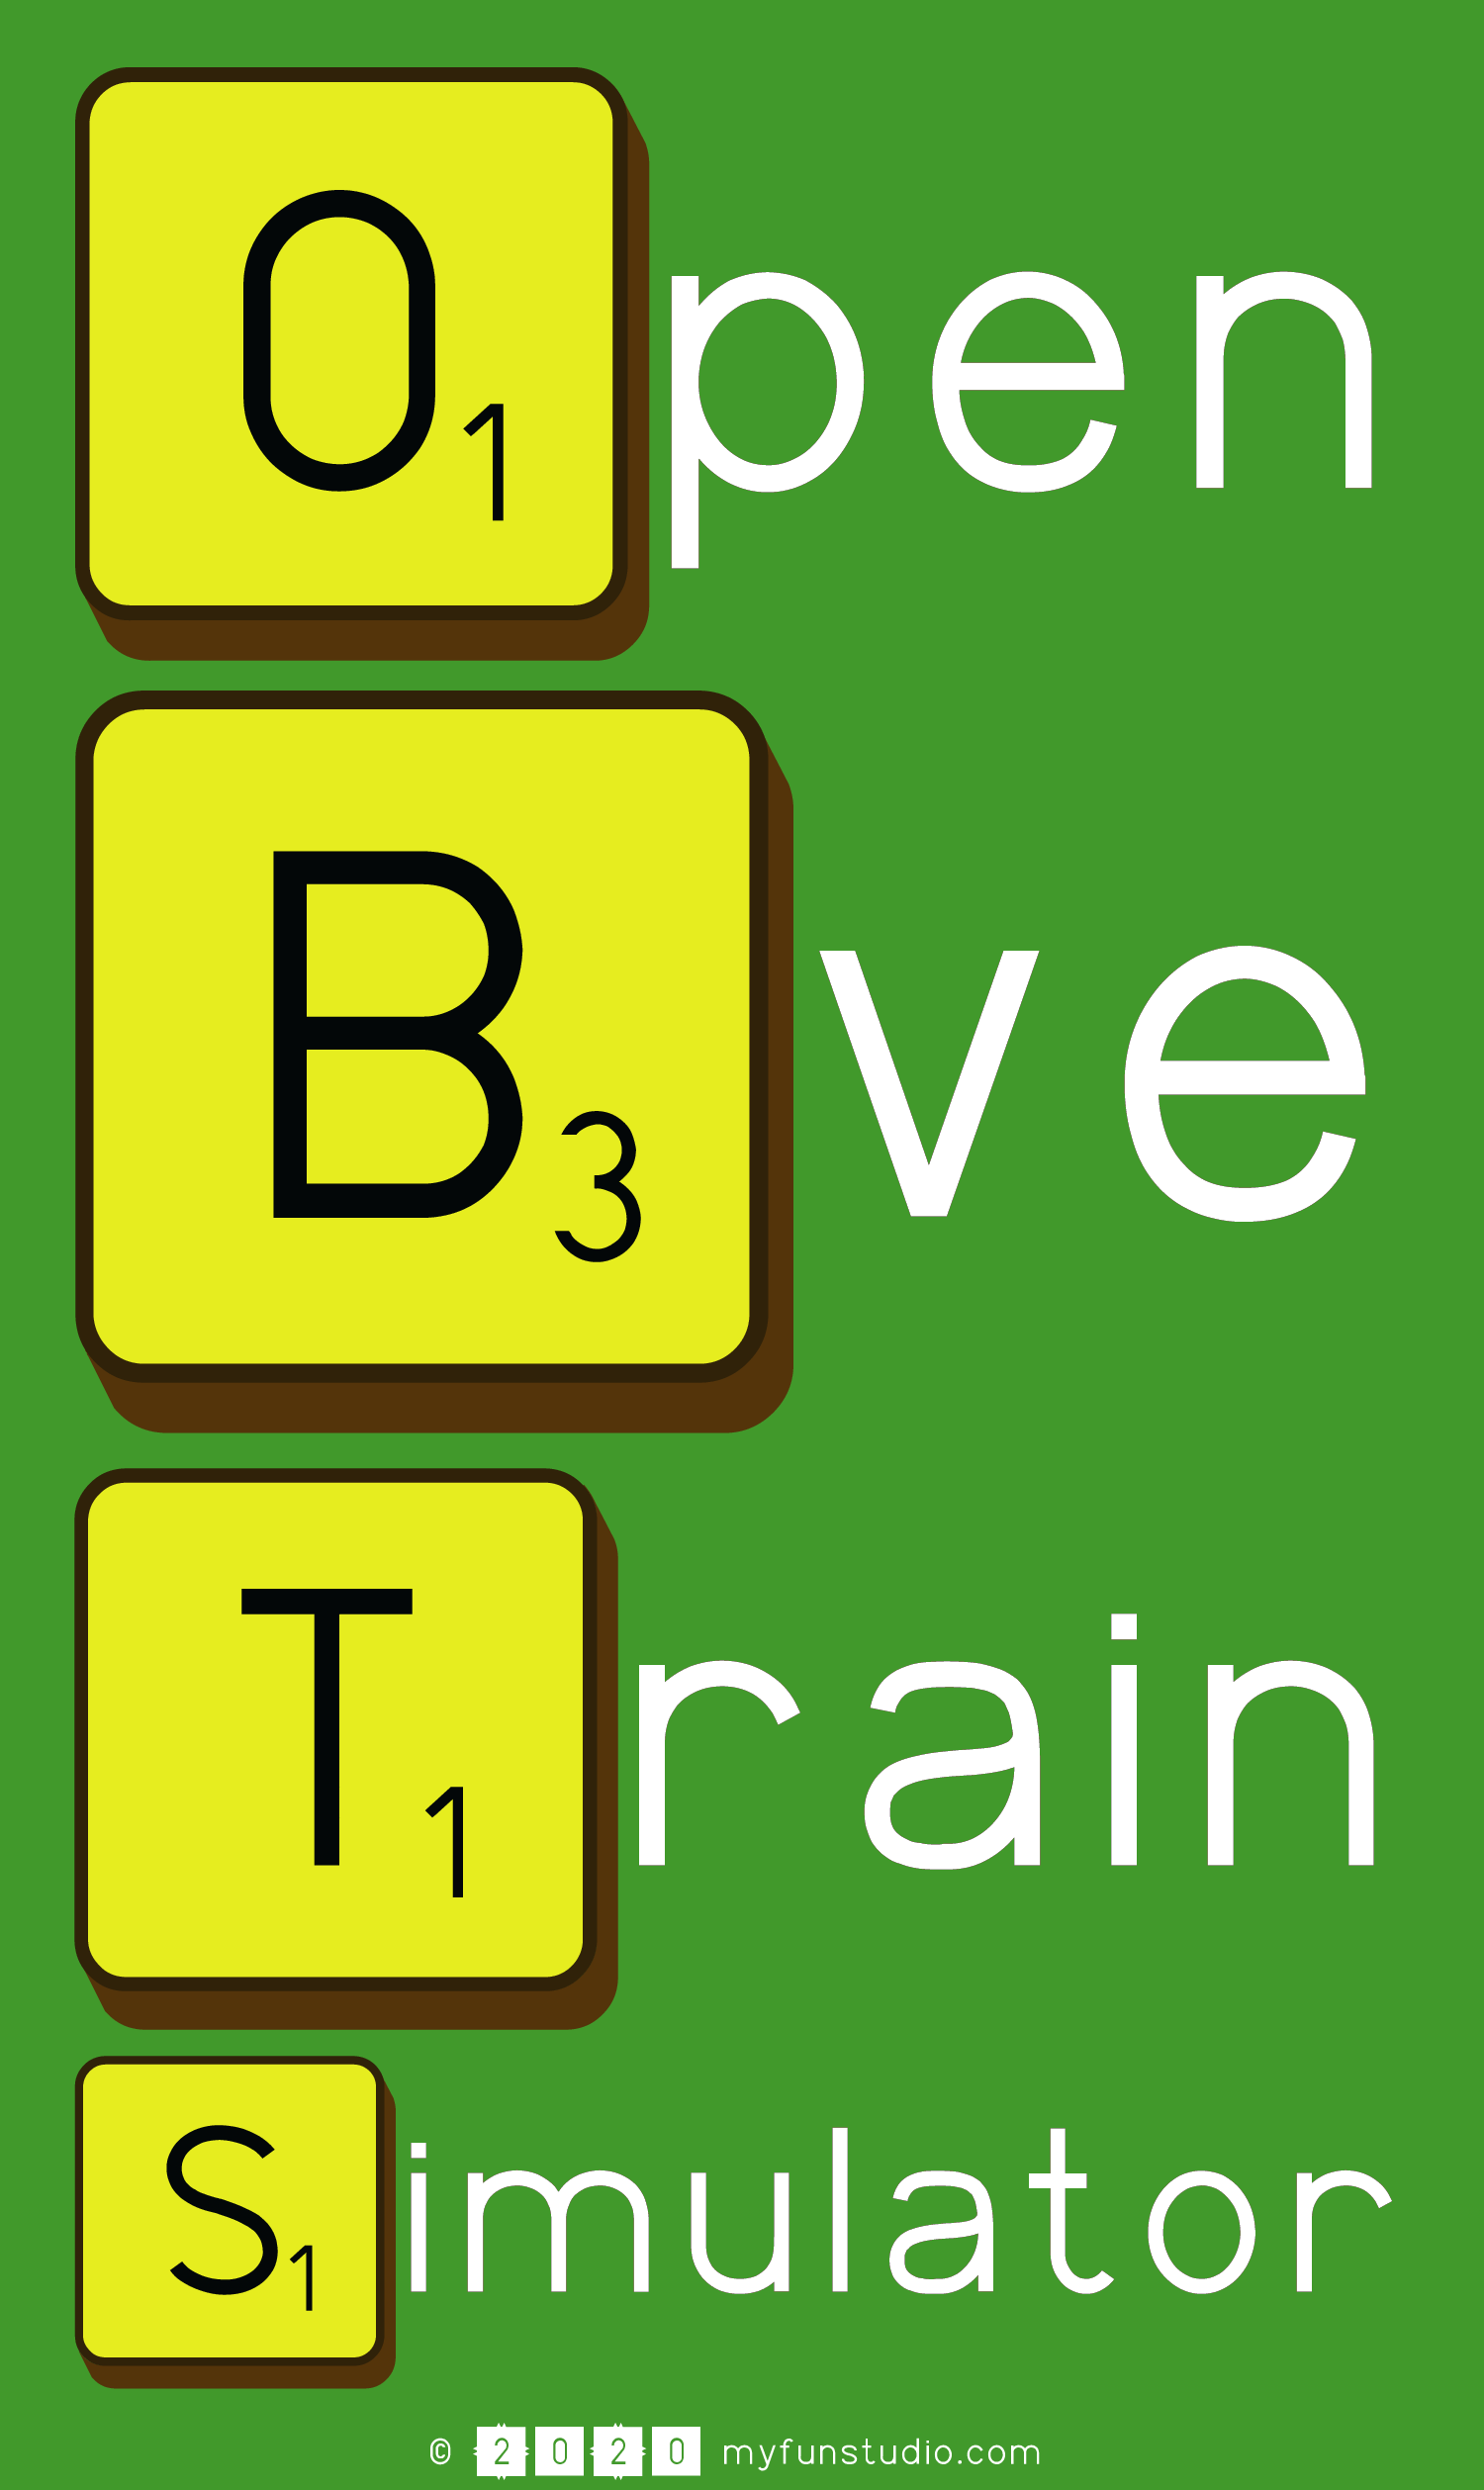 Open Bve Train Simulator' - Elements of the Periodic Table